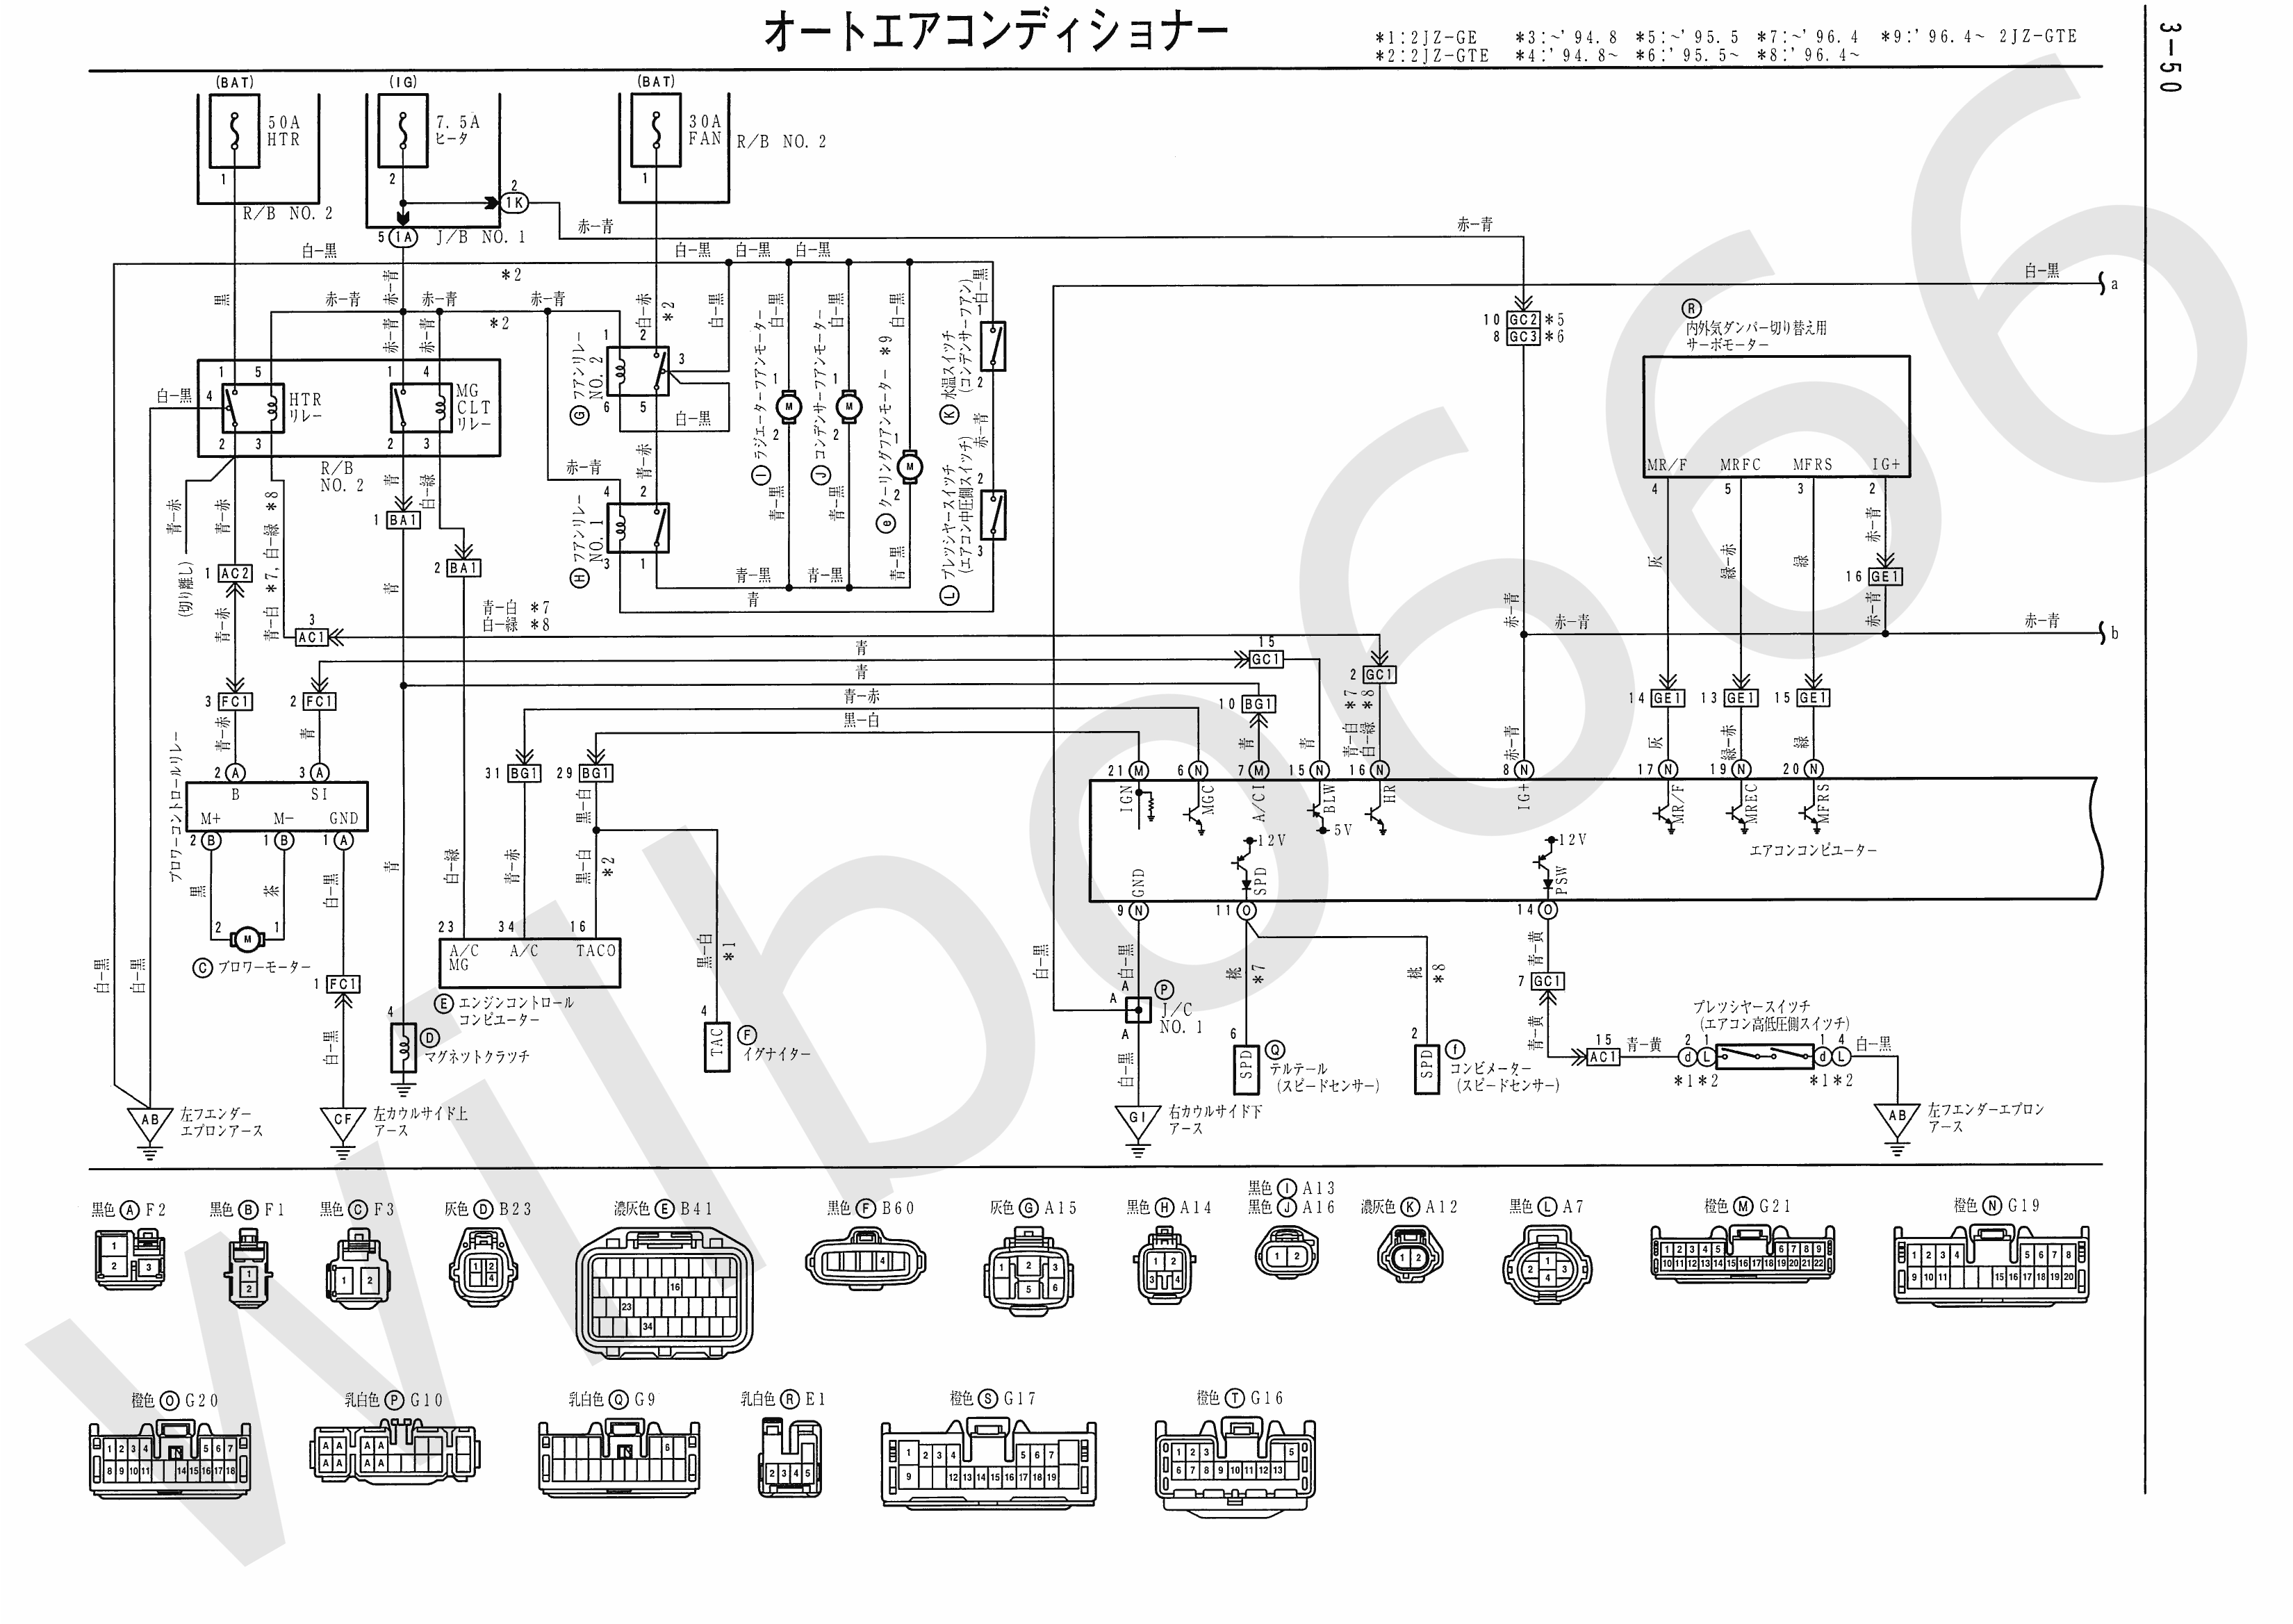 JZA80 Electrical Wiring Diagram 6742505 3 50 wilbo666 2jz ge jza80 supra engine wiring ge air conditioner wiring diagram at webbmarketing.co